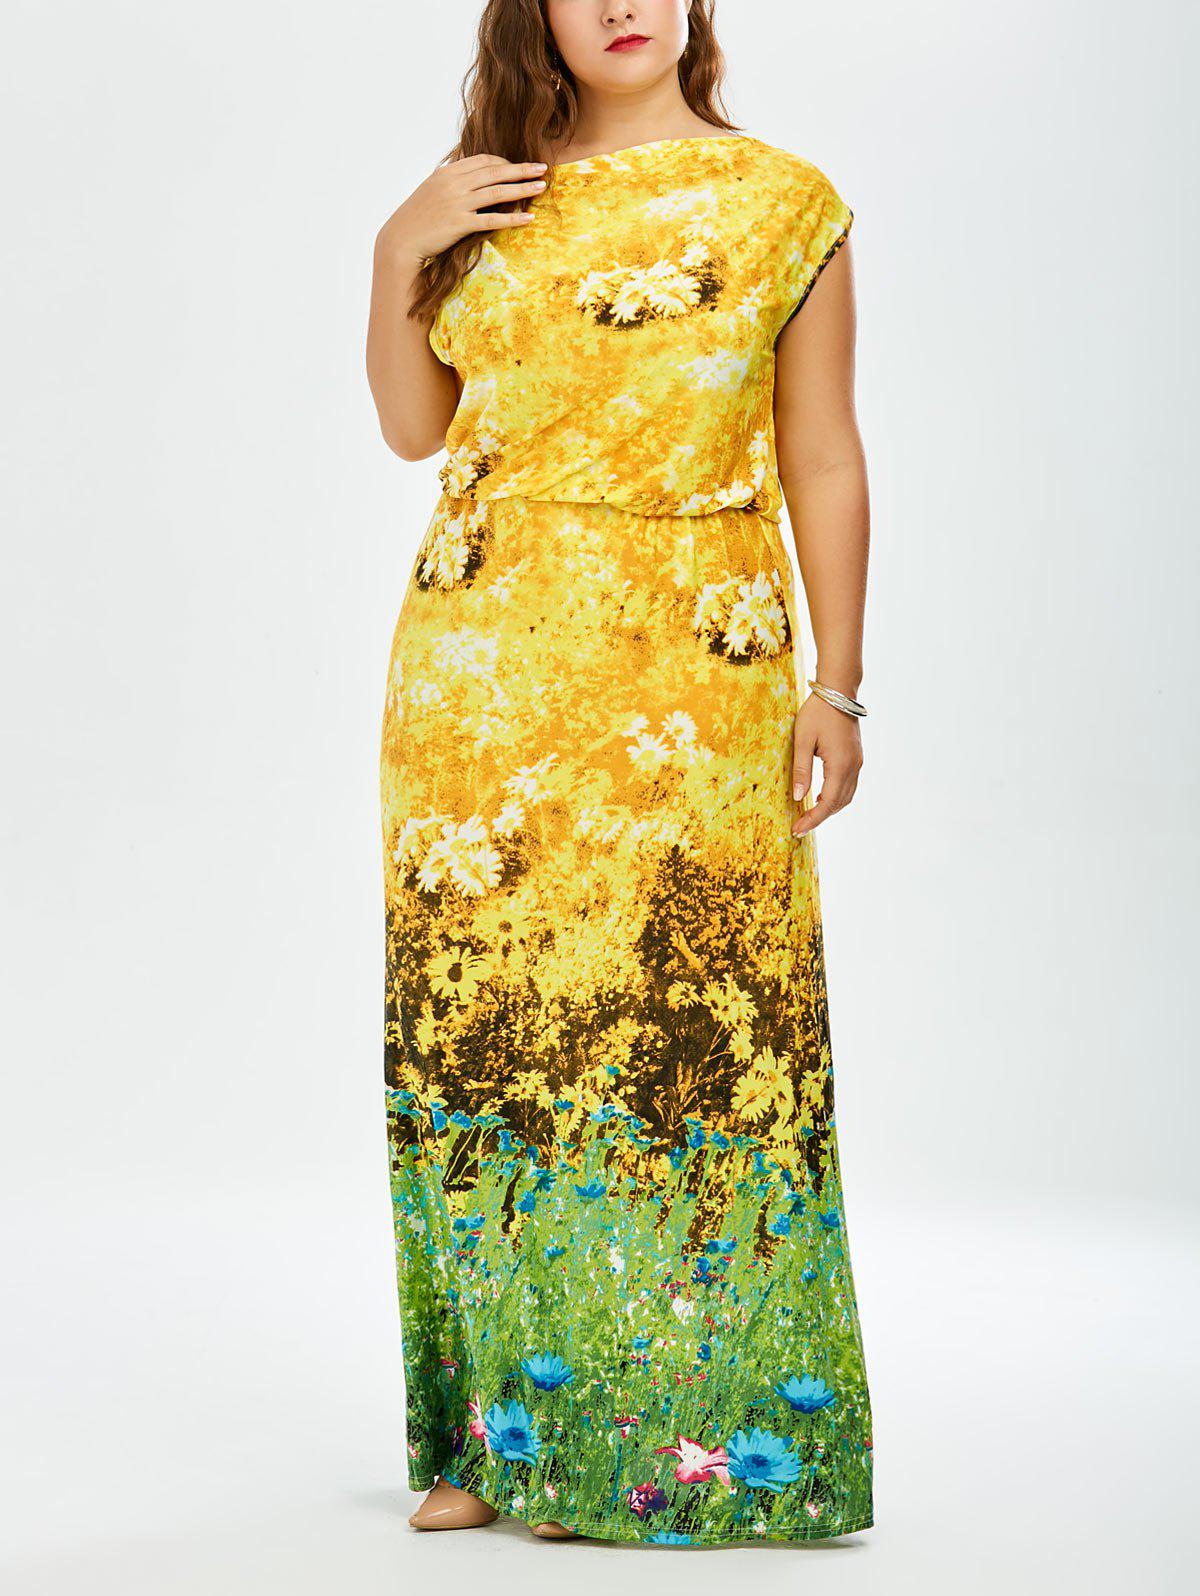 923163af572 39% OFF  Sunflower Printed Long Plus Size Maxi Dress